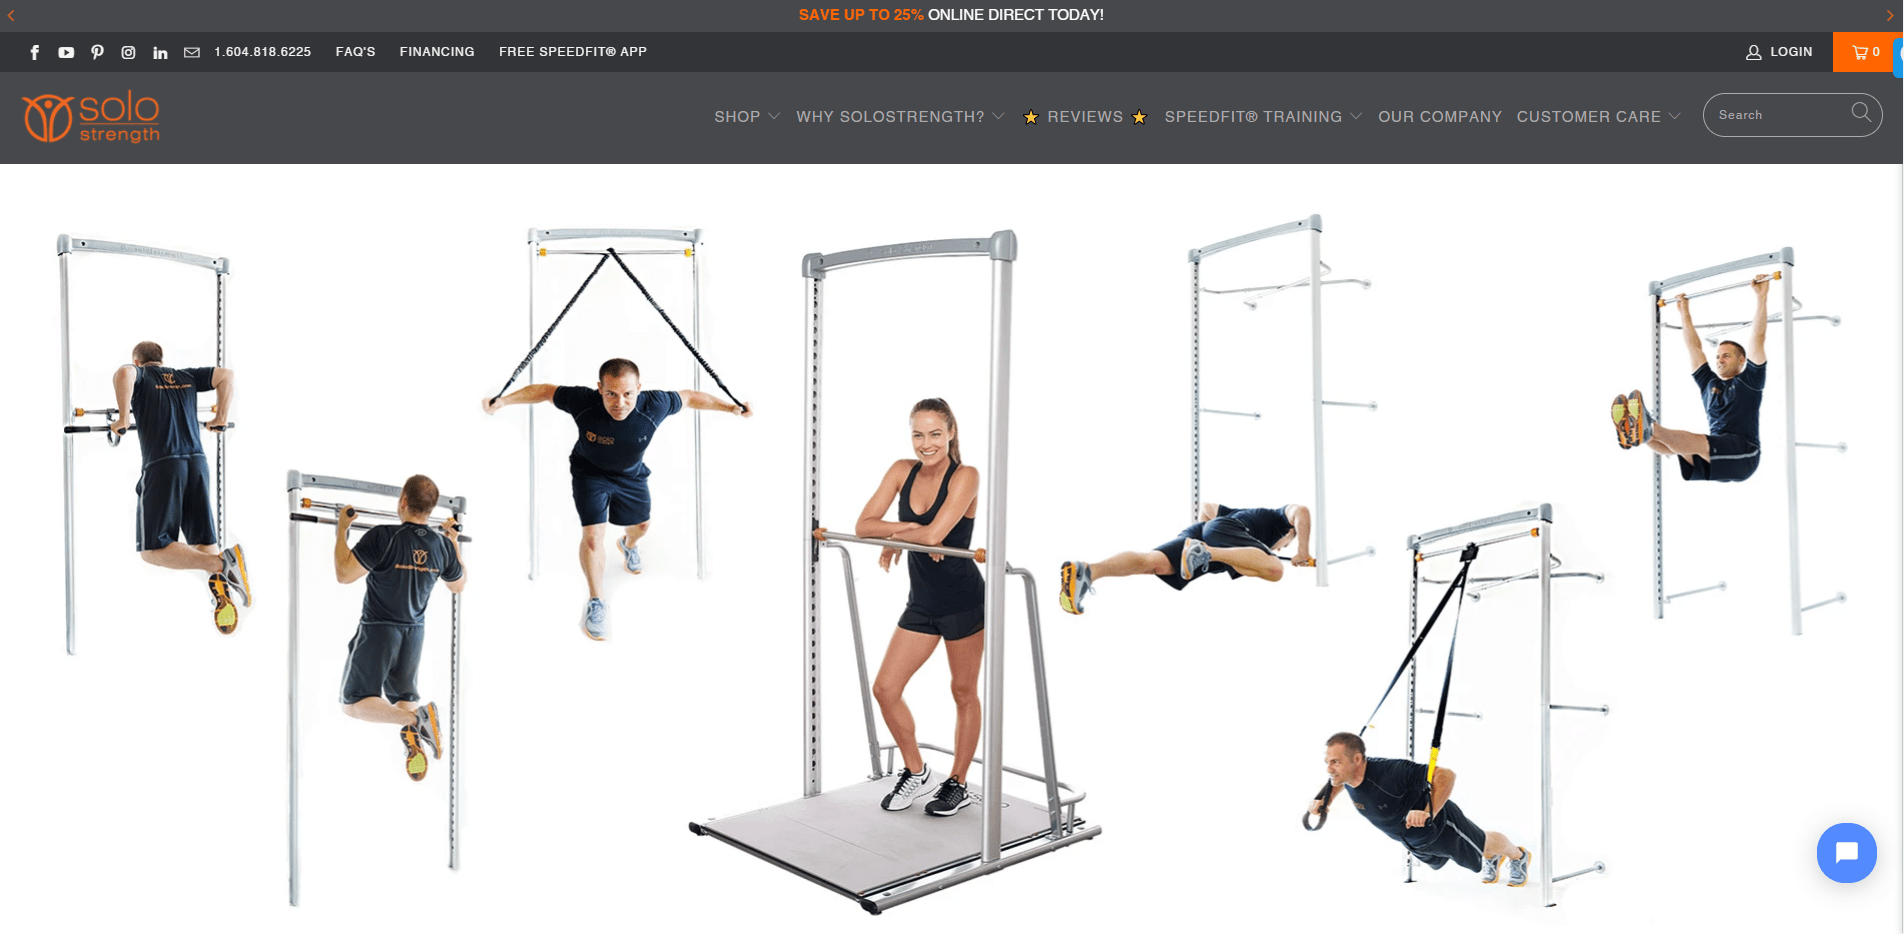 solostrength.com portfolio website